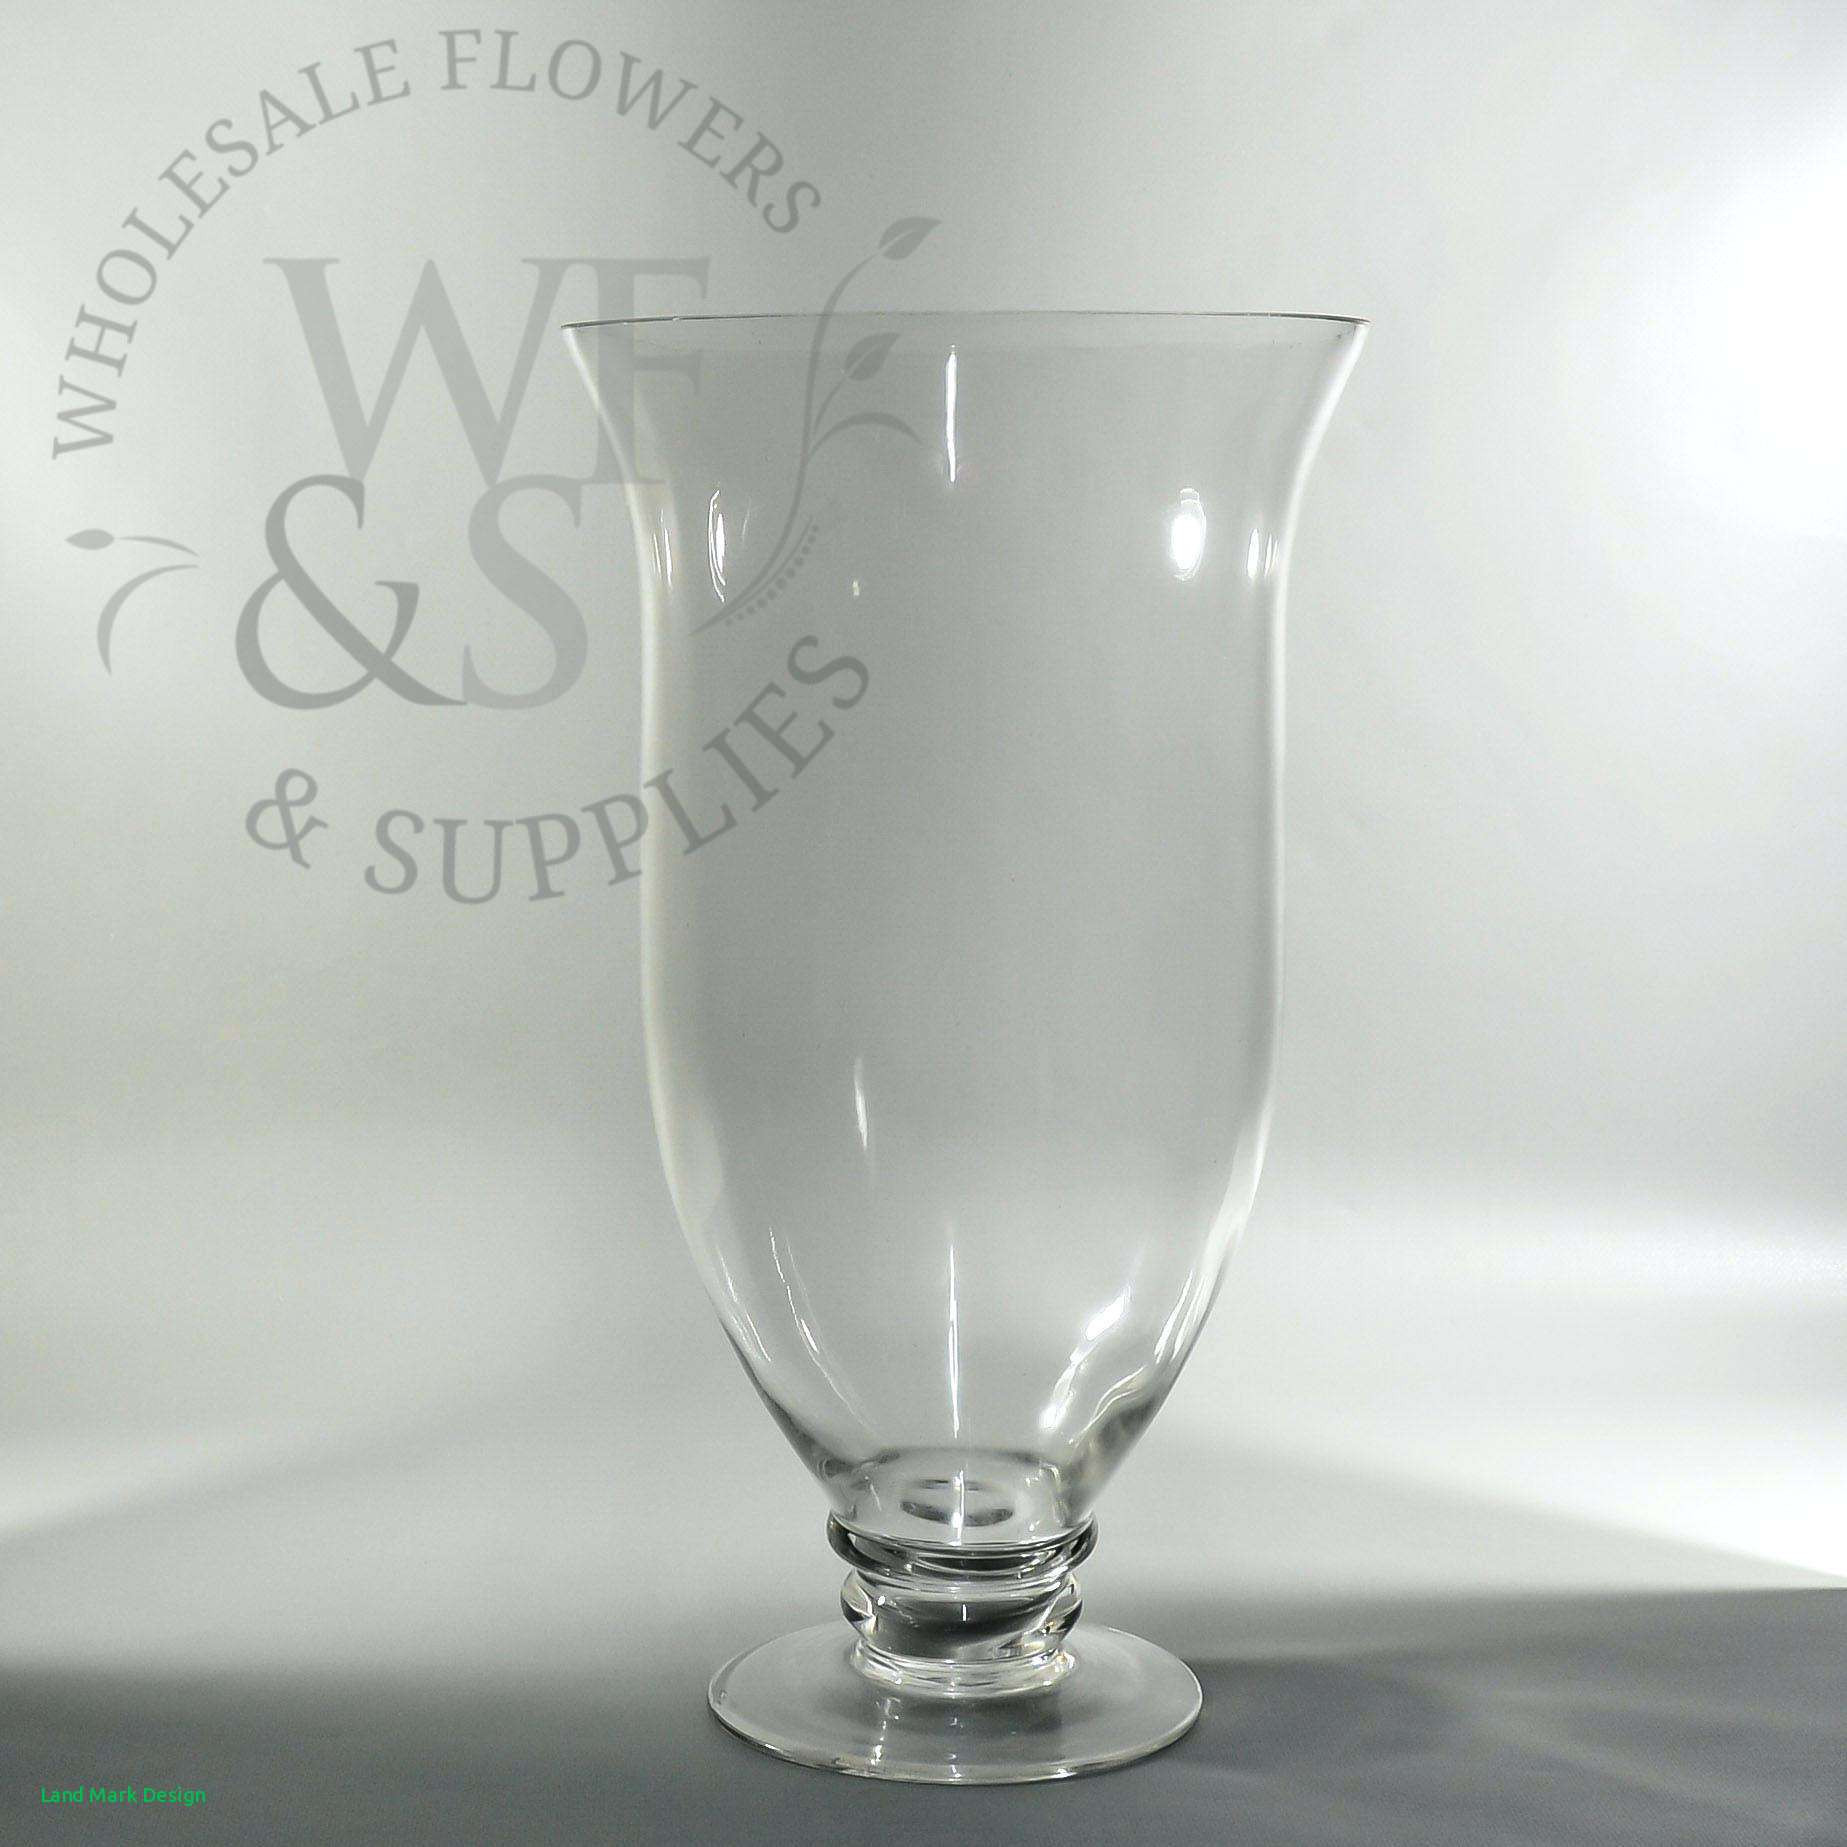 Old Waterford Crystal Vase Of Small Crystal Vase Photos Waterford Crystal Vase 225 00 Small 65 Throughout Small Crystal Vase Images 43 New Small Living Rooms Graphics Of Small Crystal Vase Photos Waterford